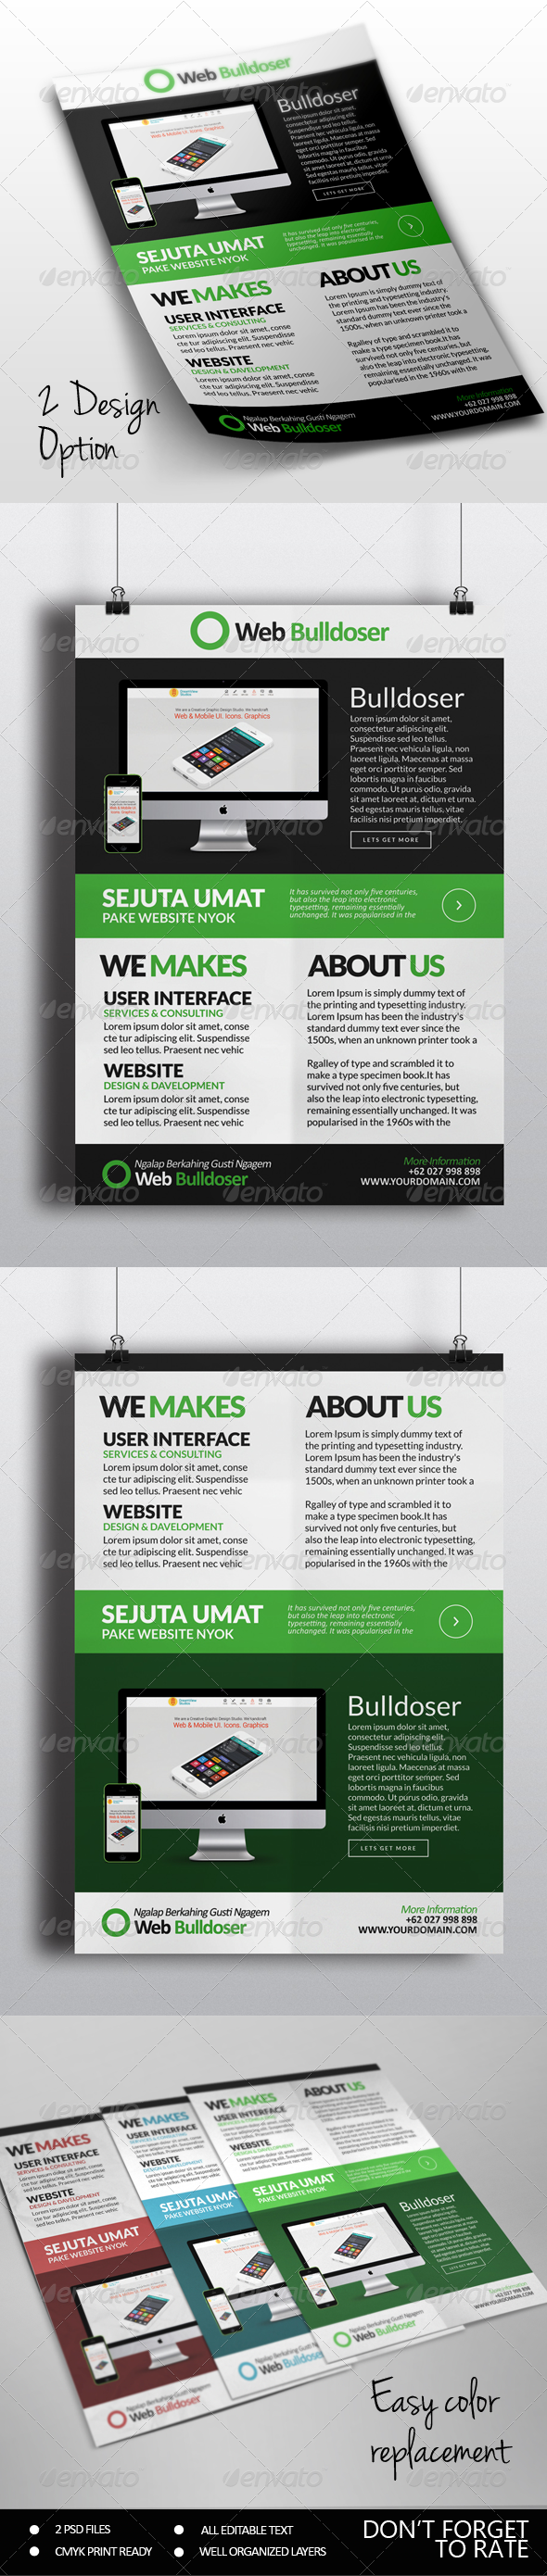 Premuim Website Design Flyer - Commerce Flyers